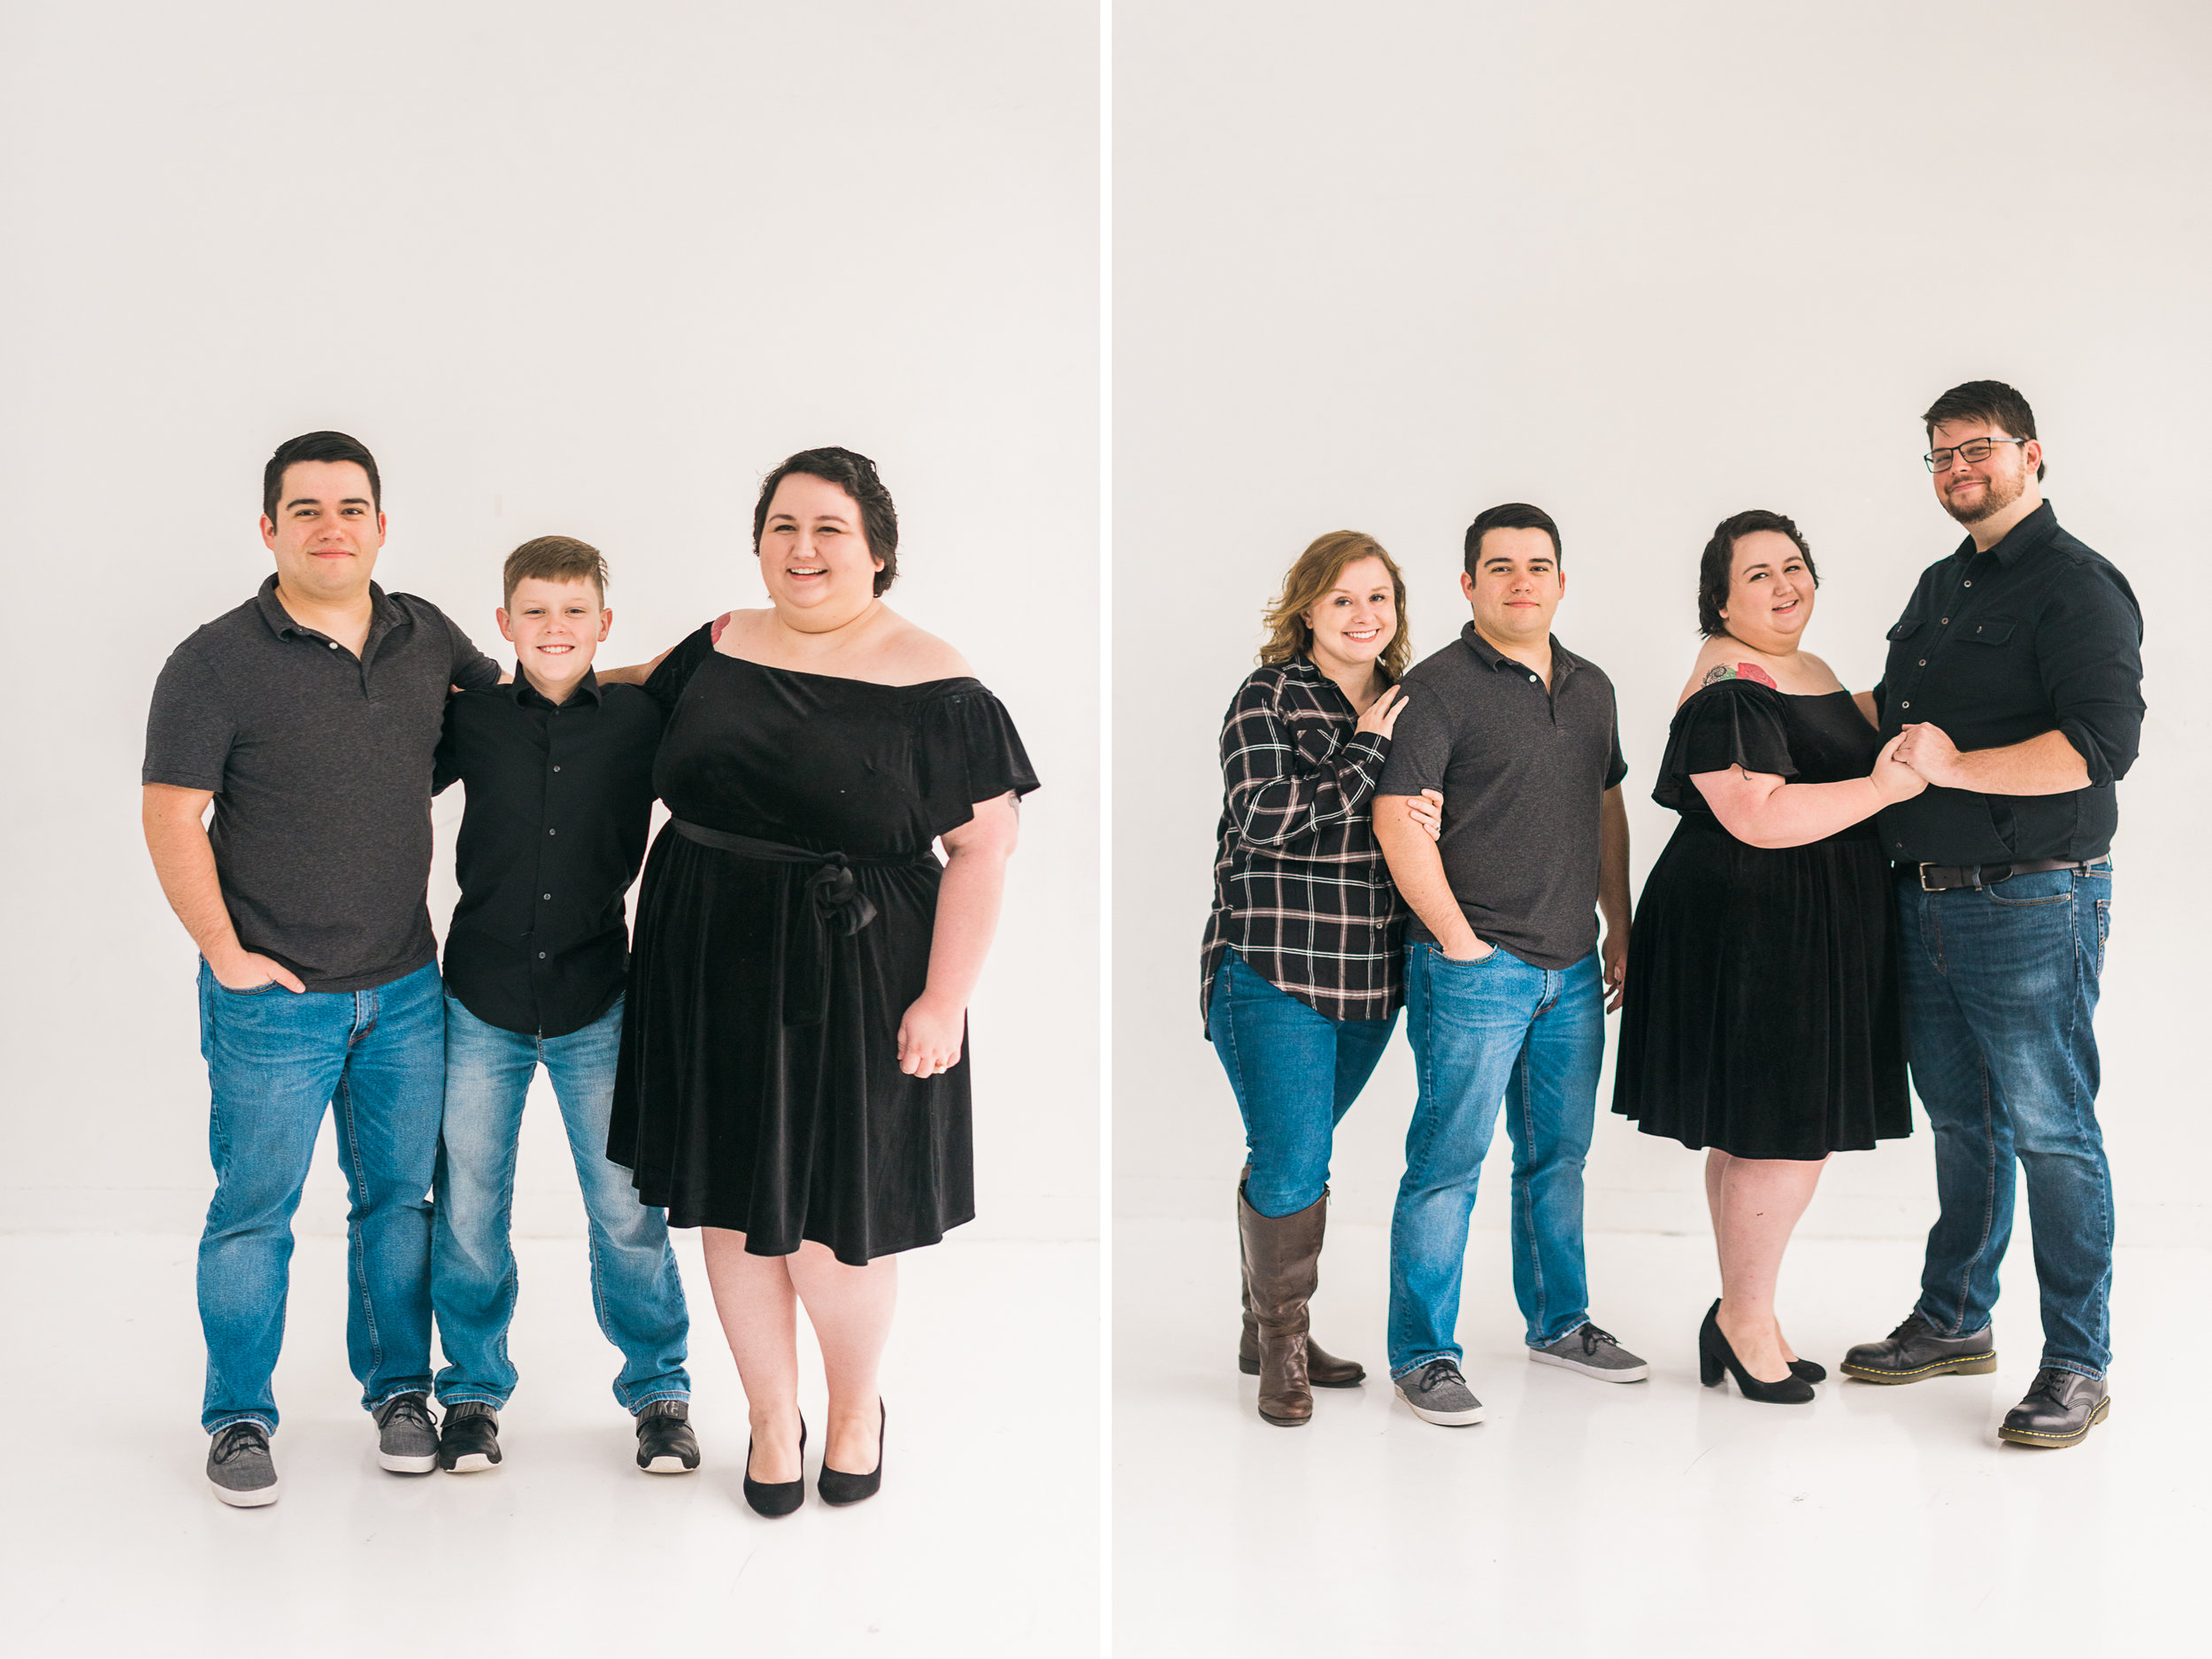 WhiteBackground_HoustonFamilyPortraitPhotographer_ModernStudio_FamilyPhotos3.jpg